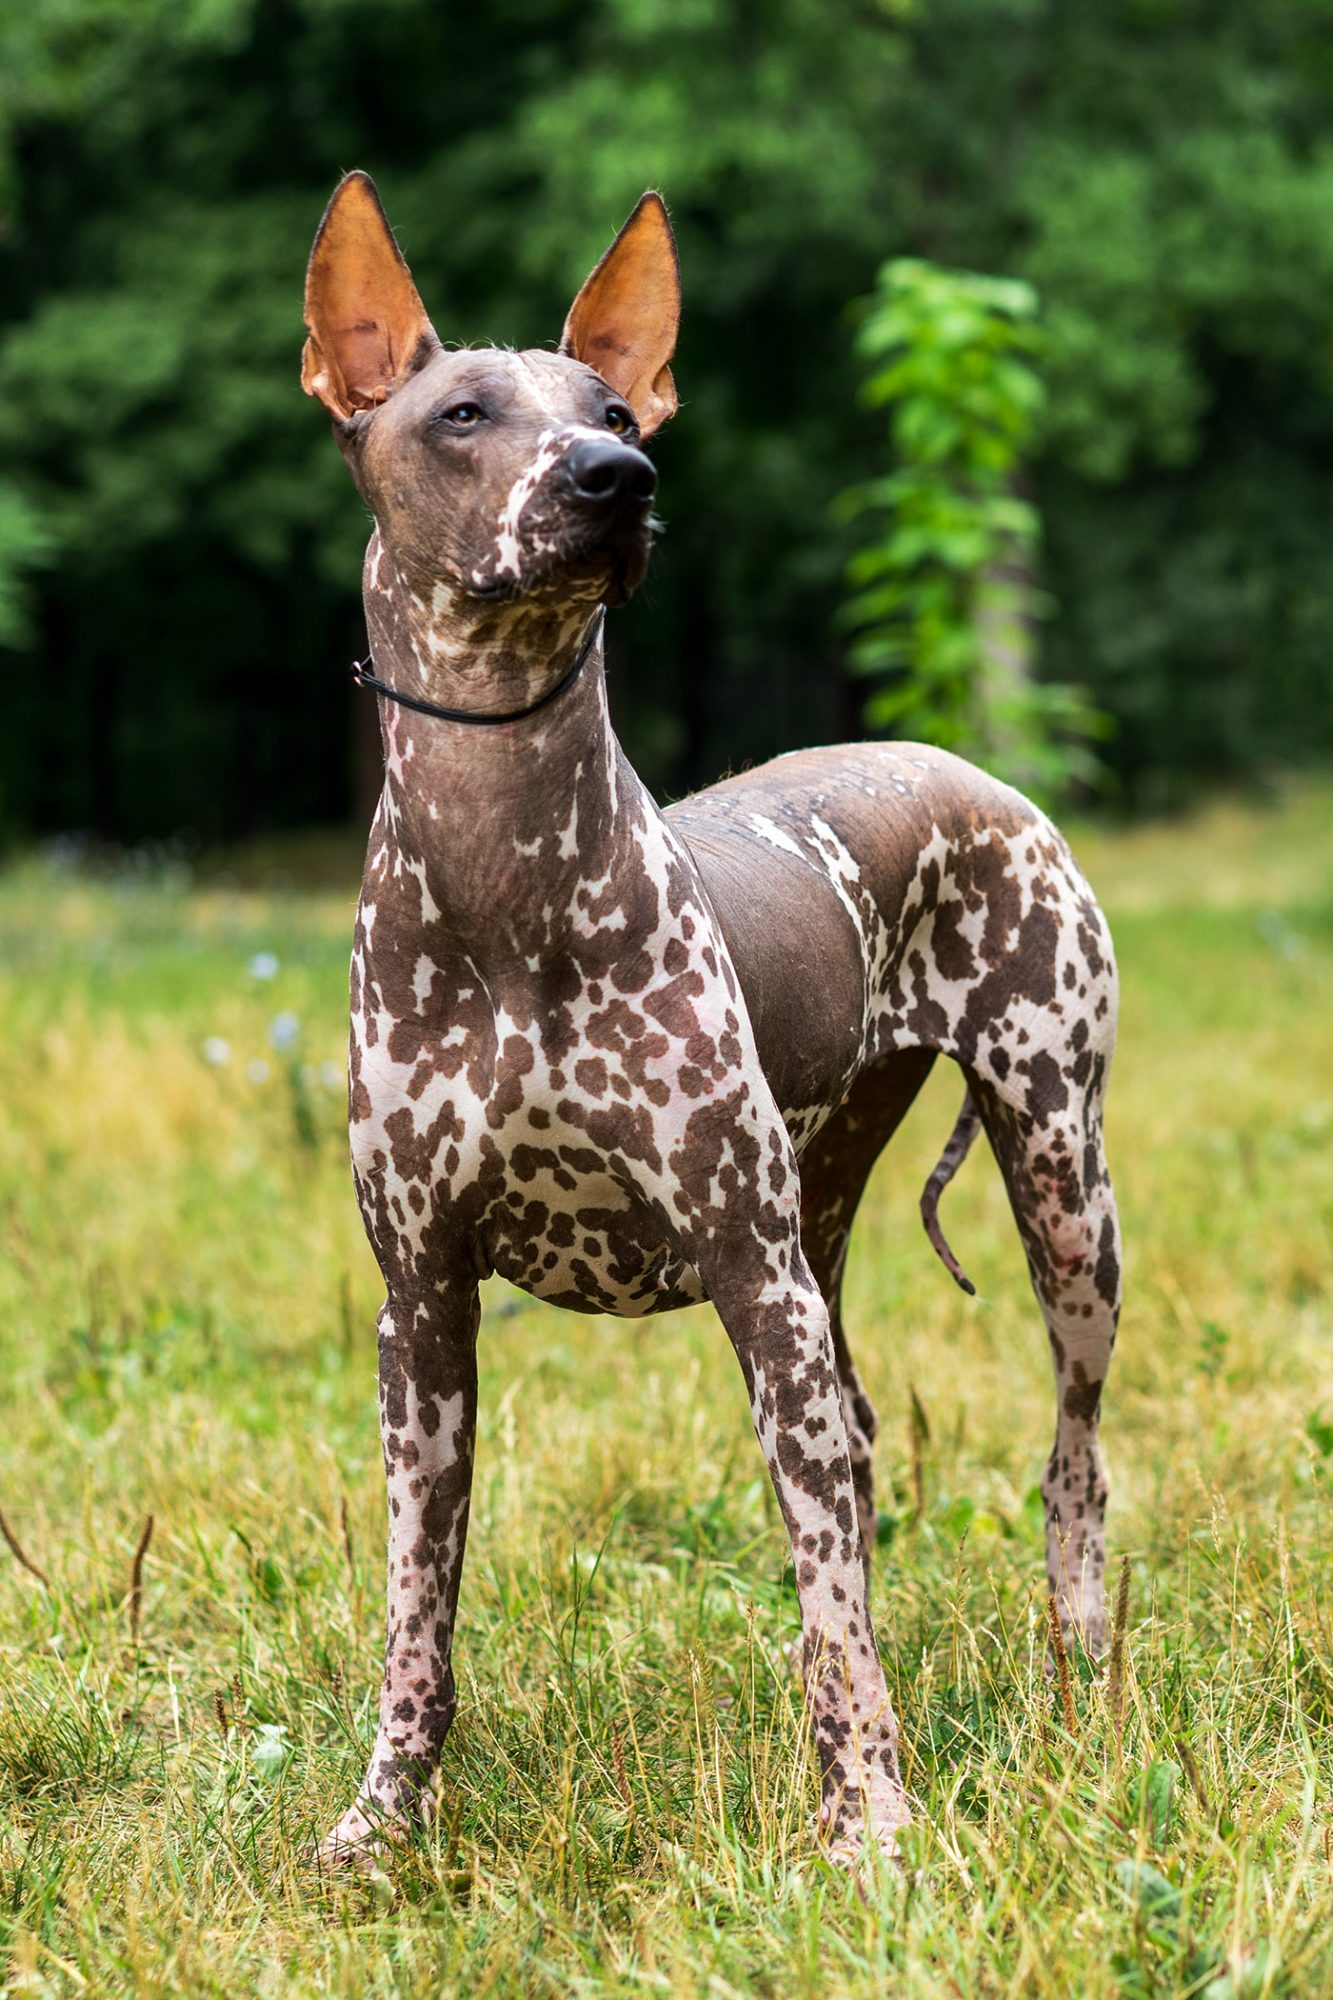 spotted xoloitzcuintle or Mexican hairless dog in grass